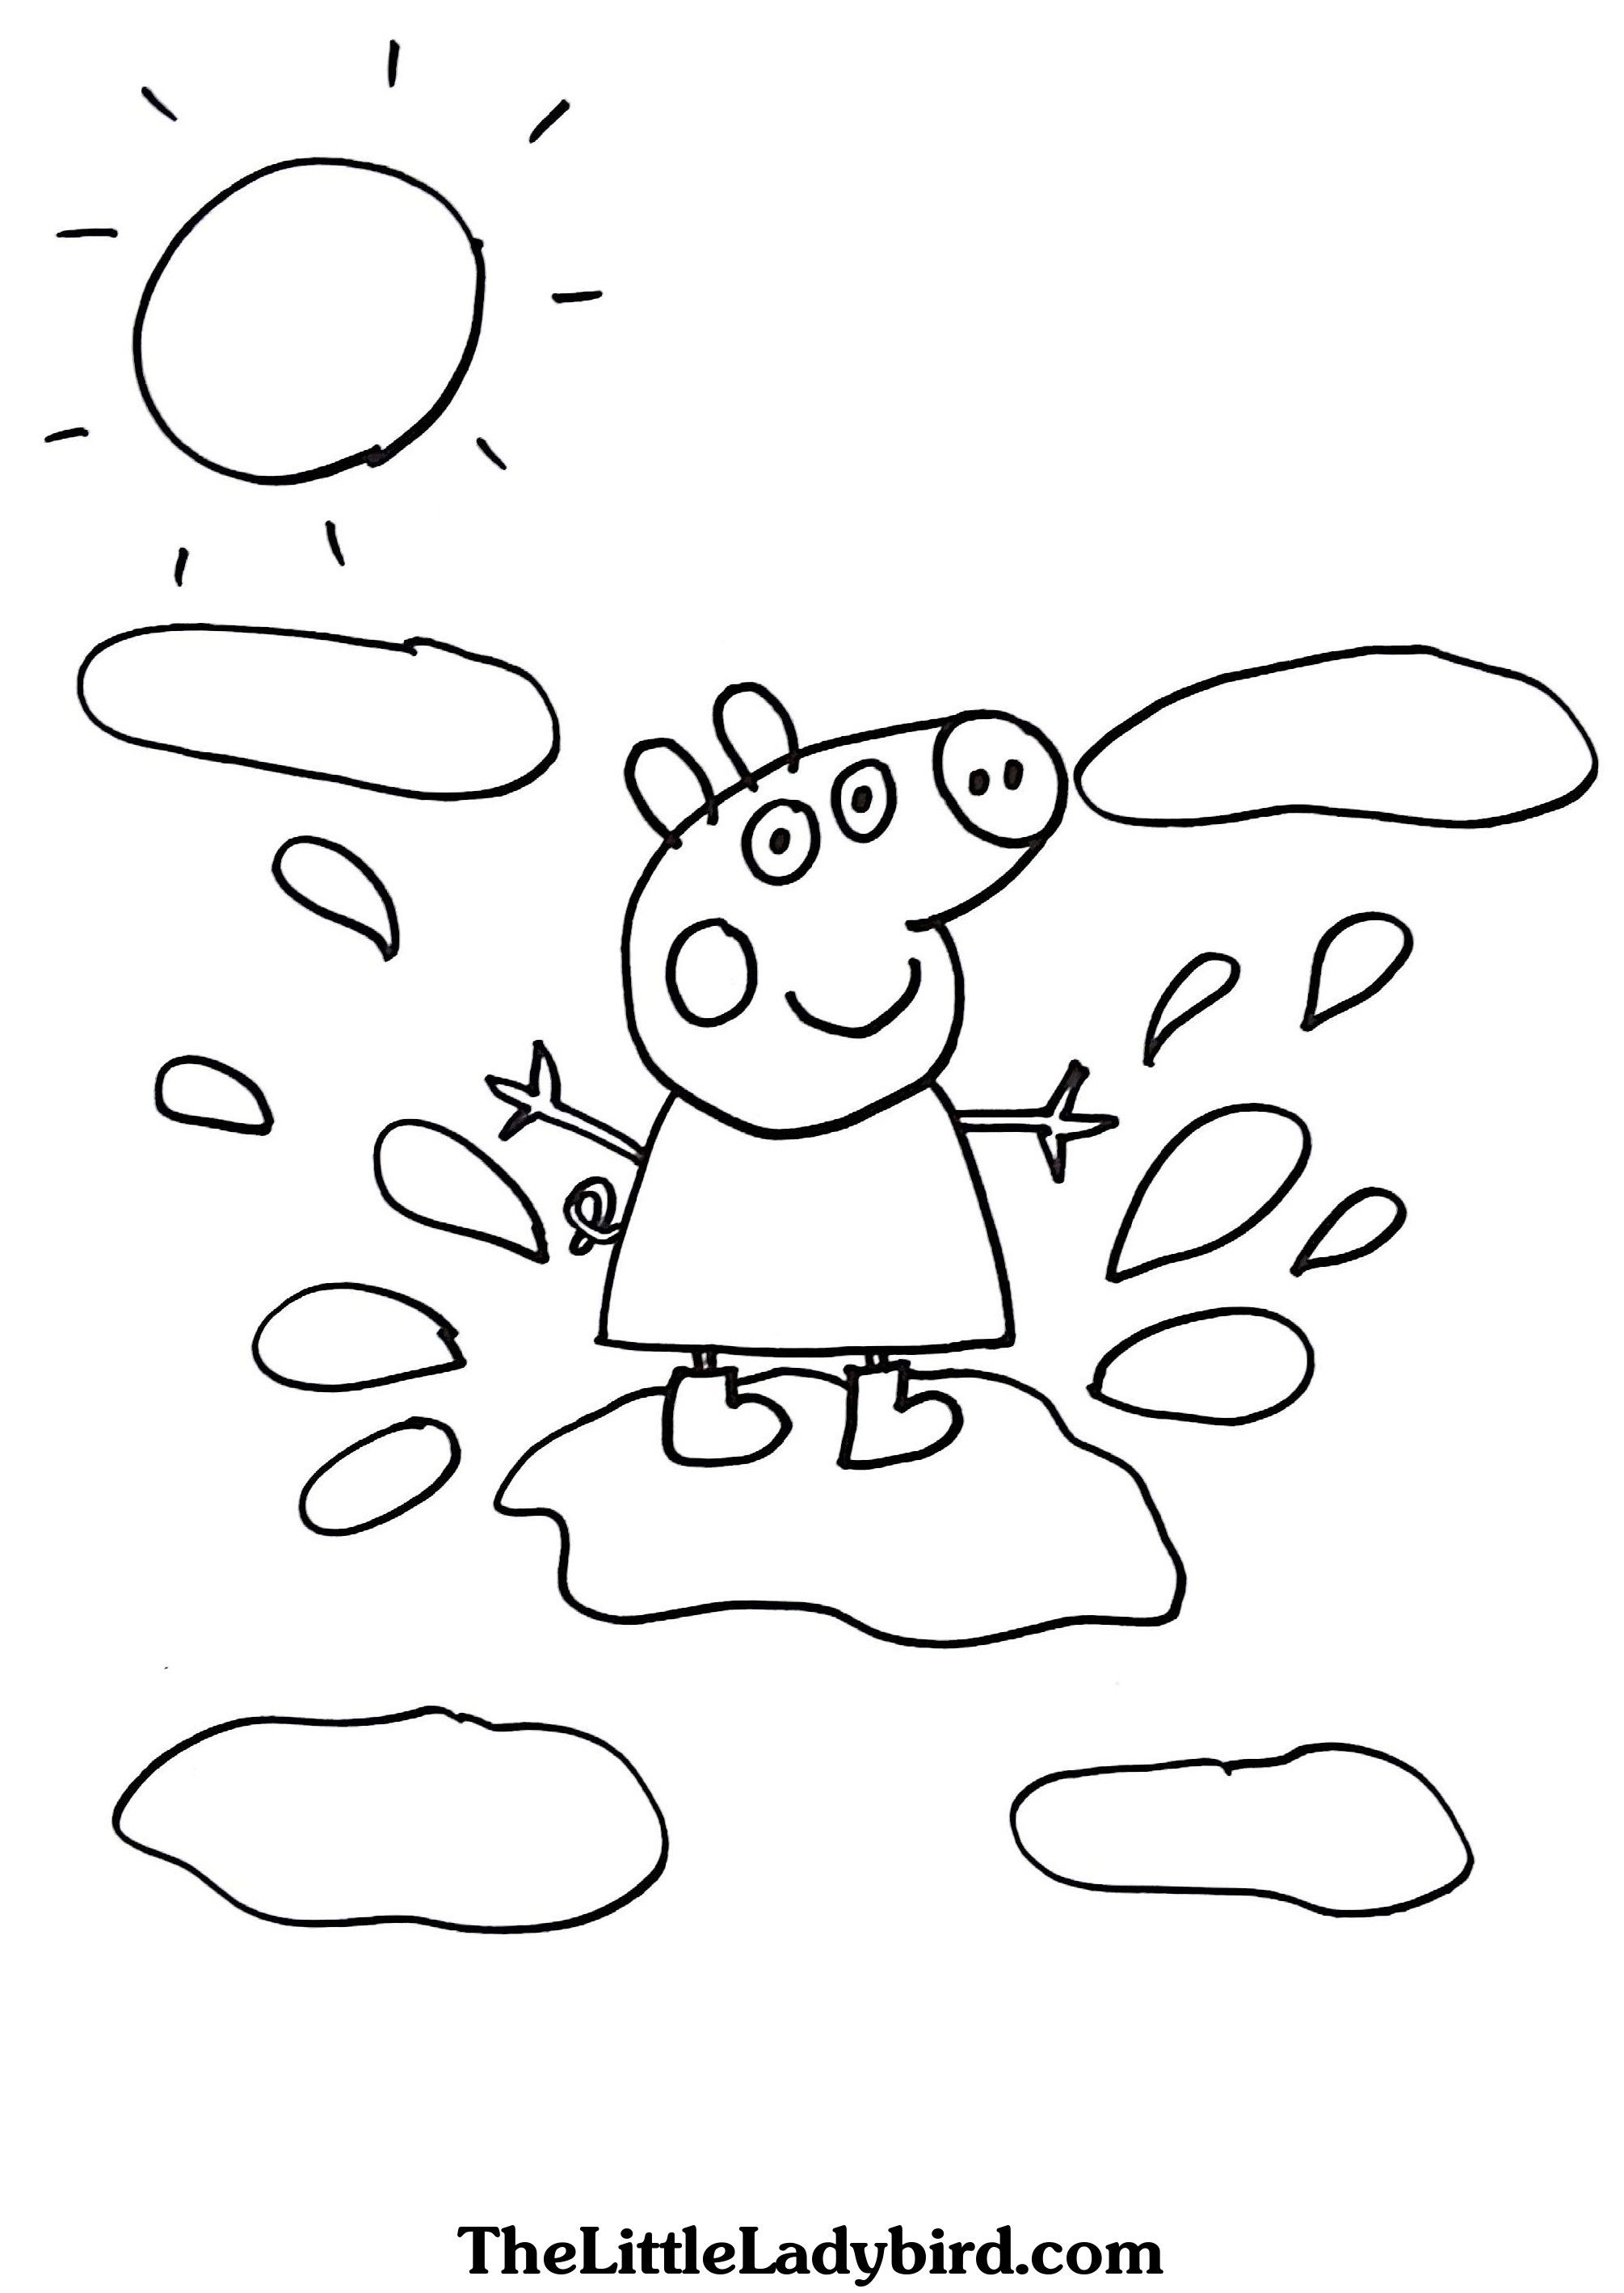 Peppa Pig Muddy Puddles Coloring Pages Through The Thousand Photographs Online With Reg Peppa Pig Coloring Pages Peppa Pig Colouring Christmas Coloring Pages [ 2838 x 2010 Pixel ]